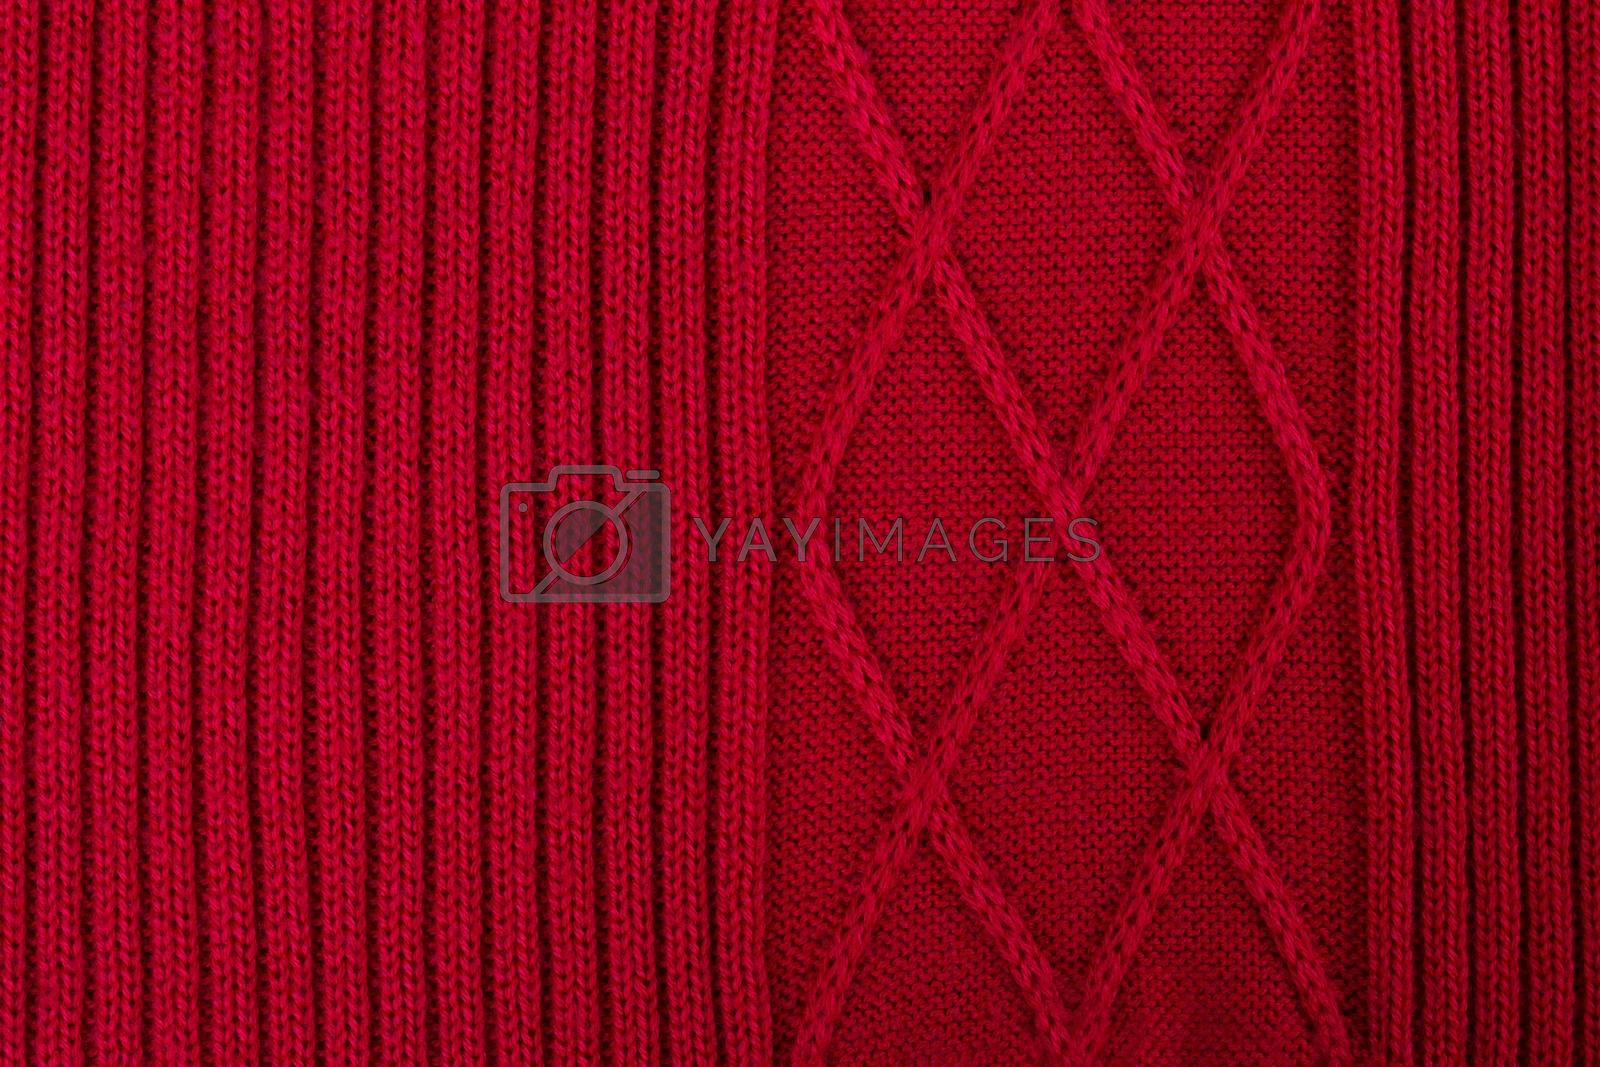 Texture of red knitted woolen fabric for wallpaper and an abstract background